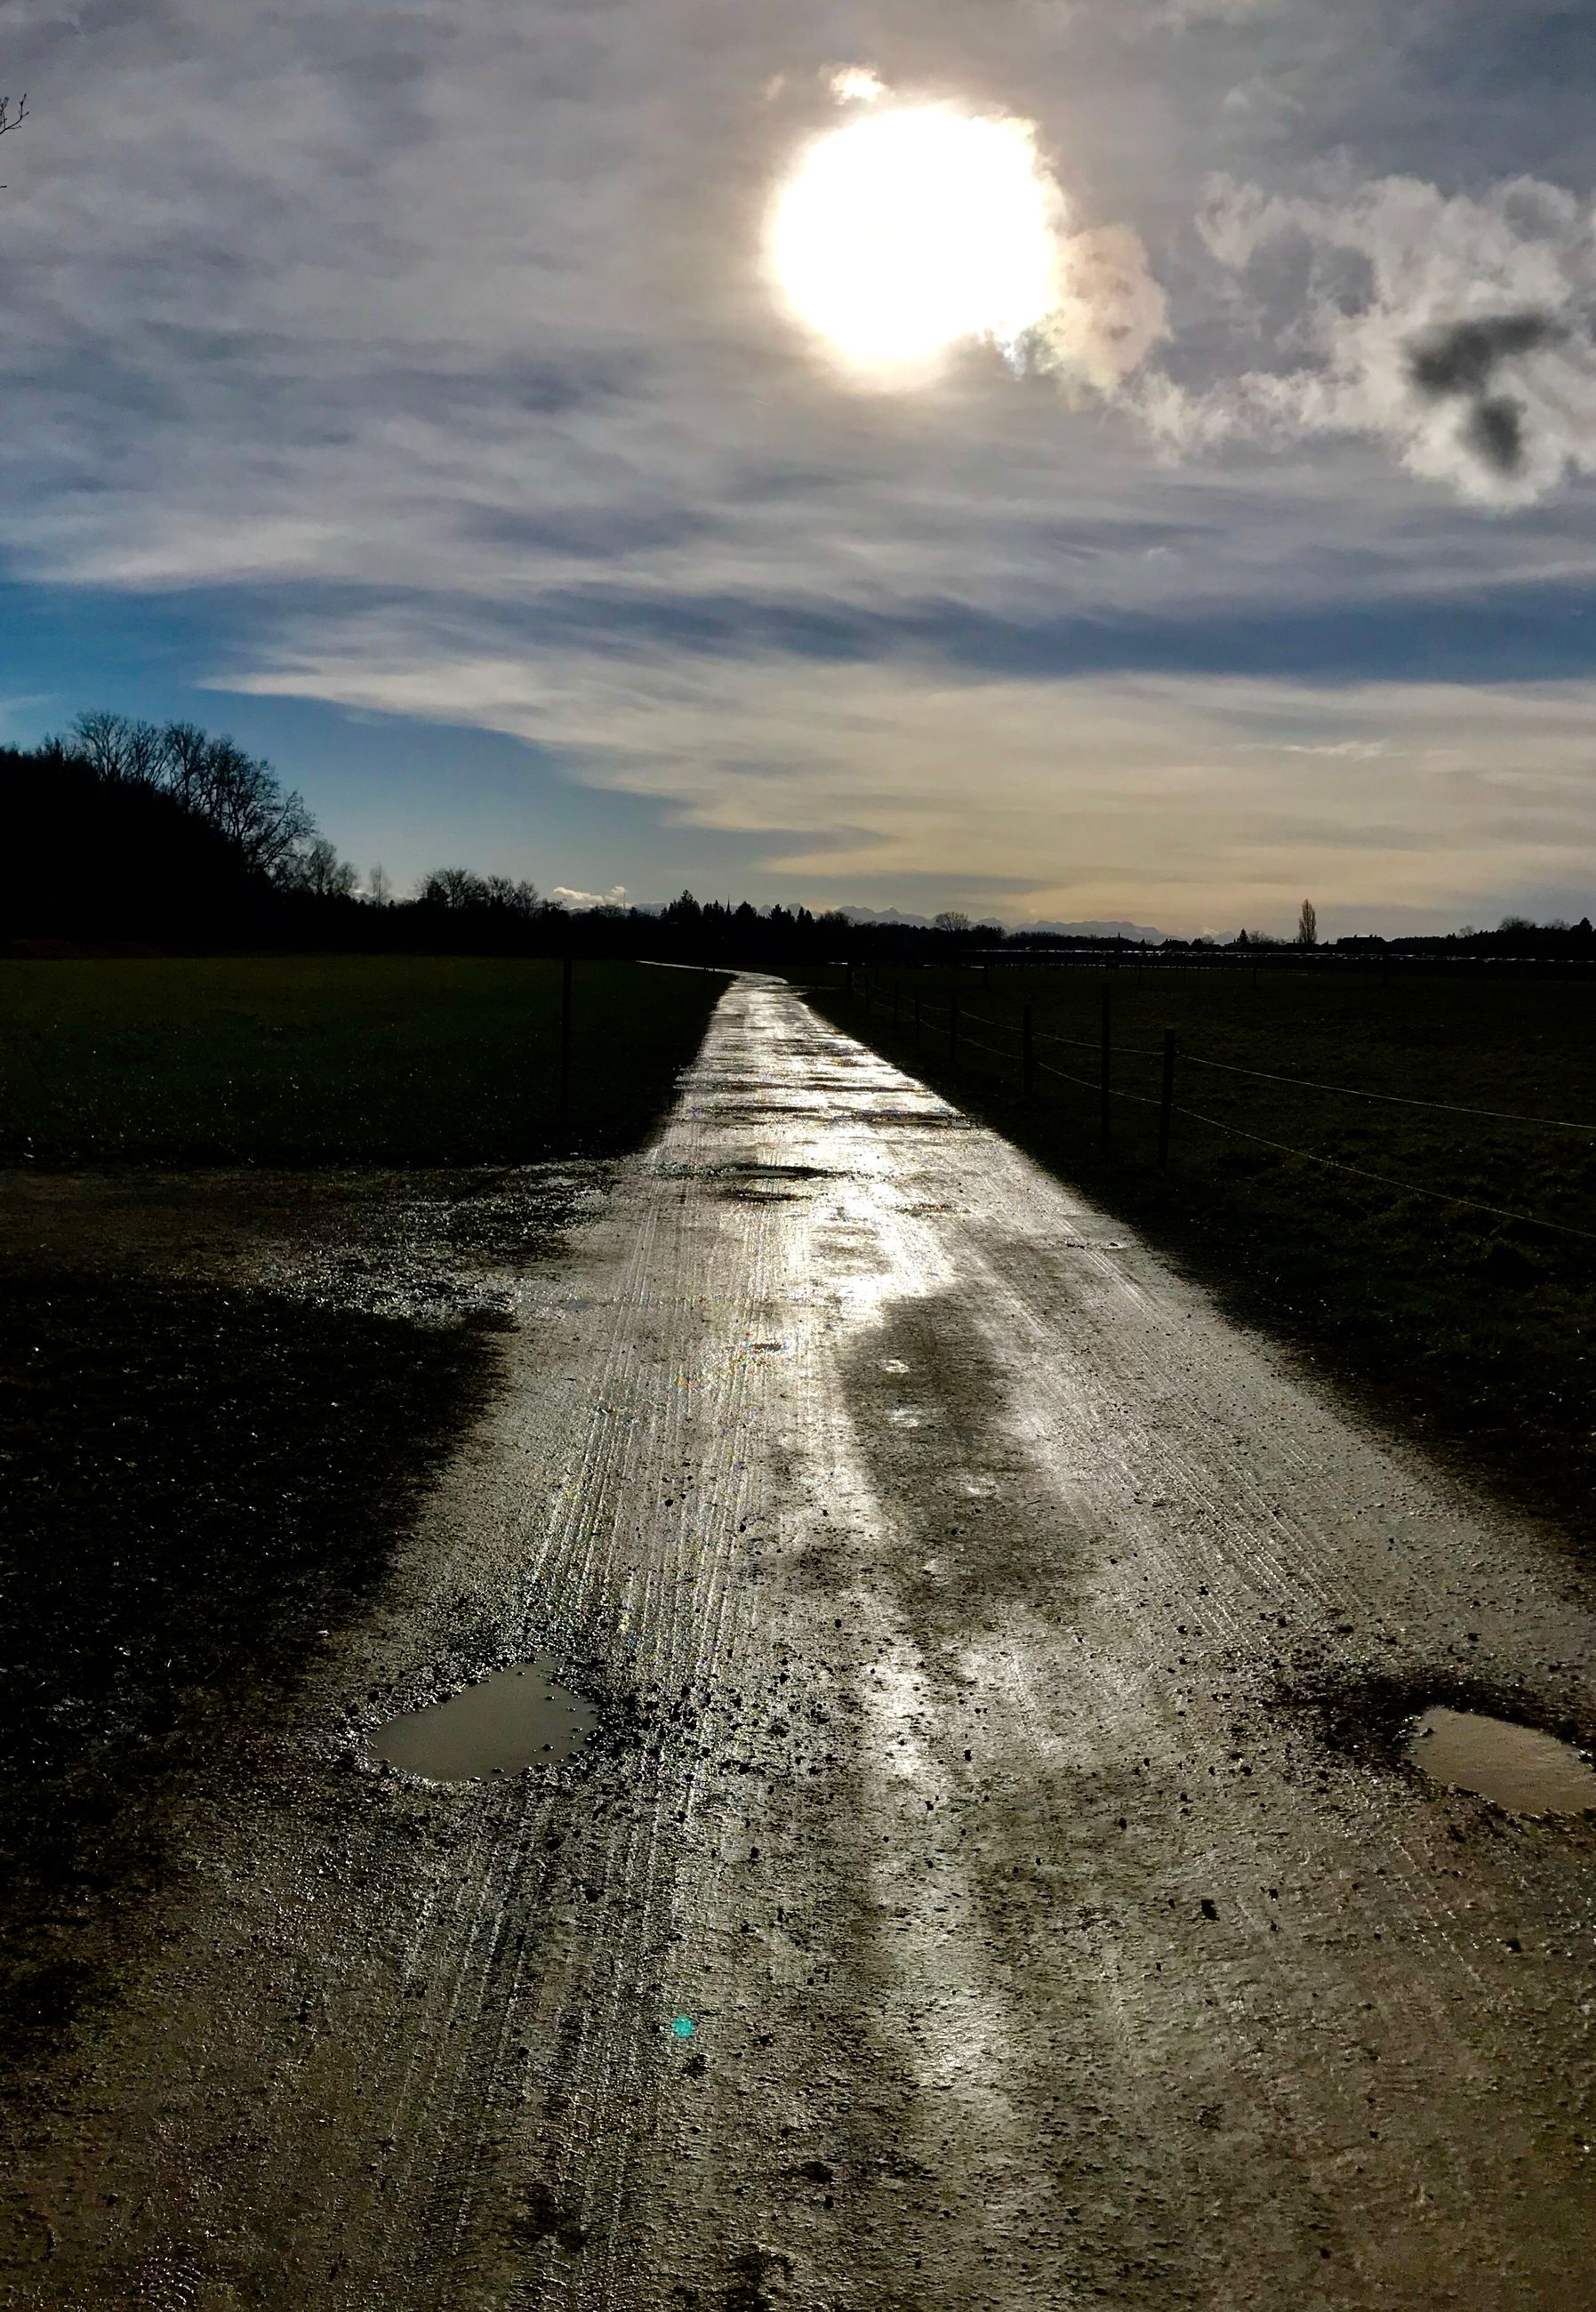 sky, sun, nature, cloud - sky, no people, outdoors, sunlight, sunset, water, scenics, road, beauty in nature, landscape, day, tree